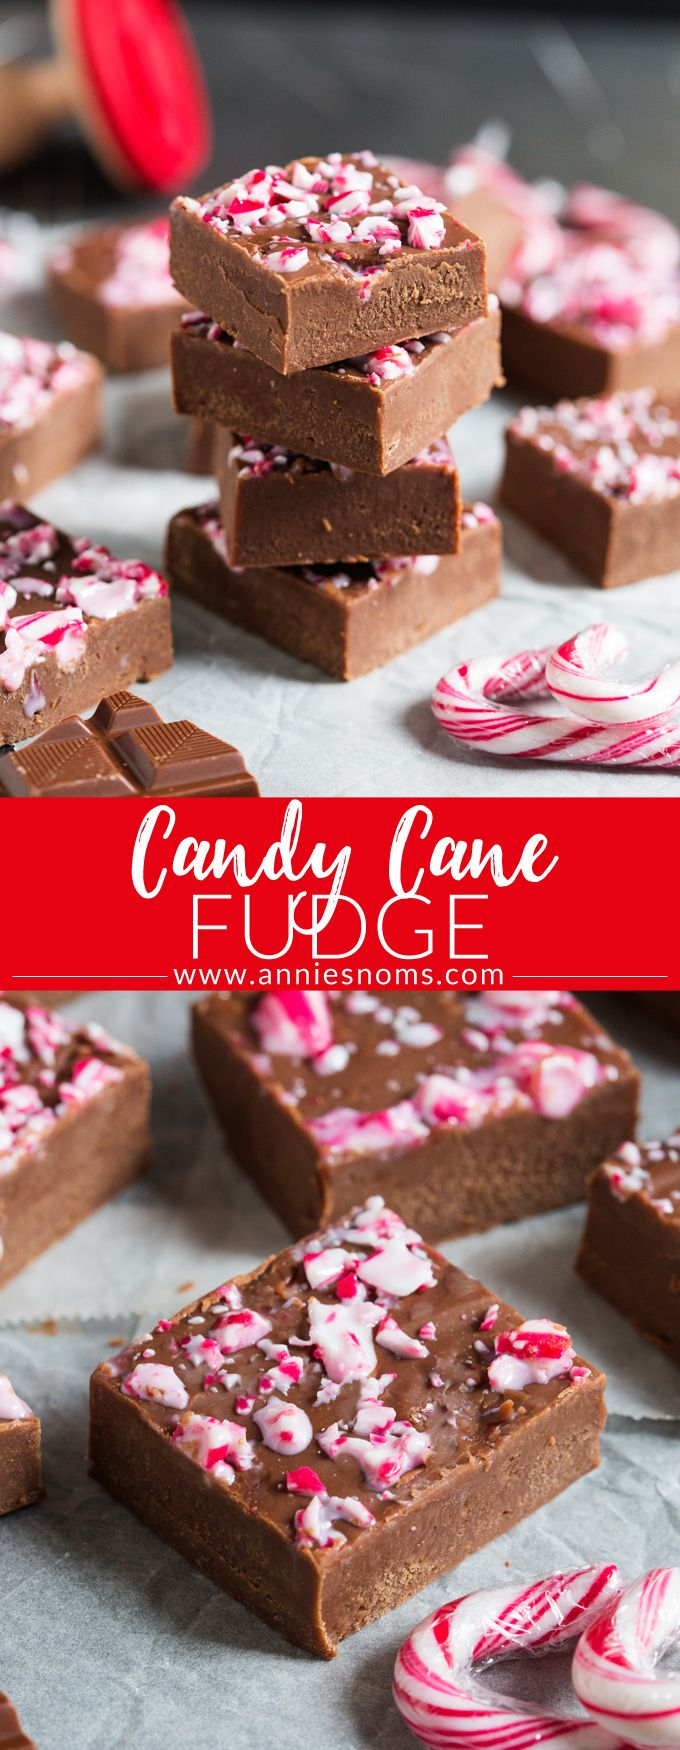 Smooth, chocolatey, filled with peppermint and with a crunchy top, this melt in your mouth Candy Cane Fudge is the perfect gift to make this #Christmas! #candycane #fudge